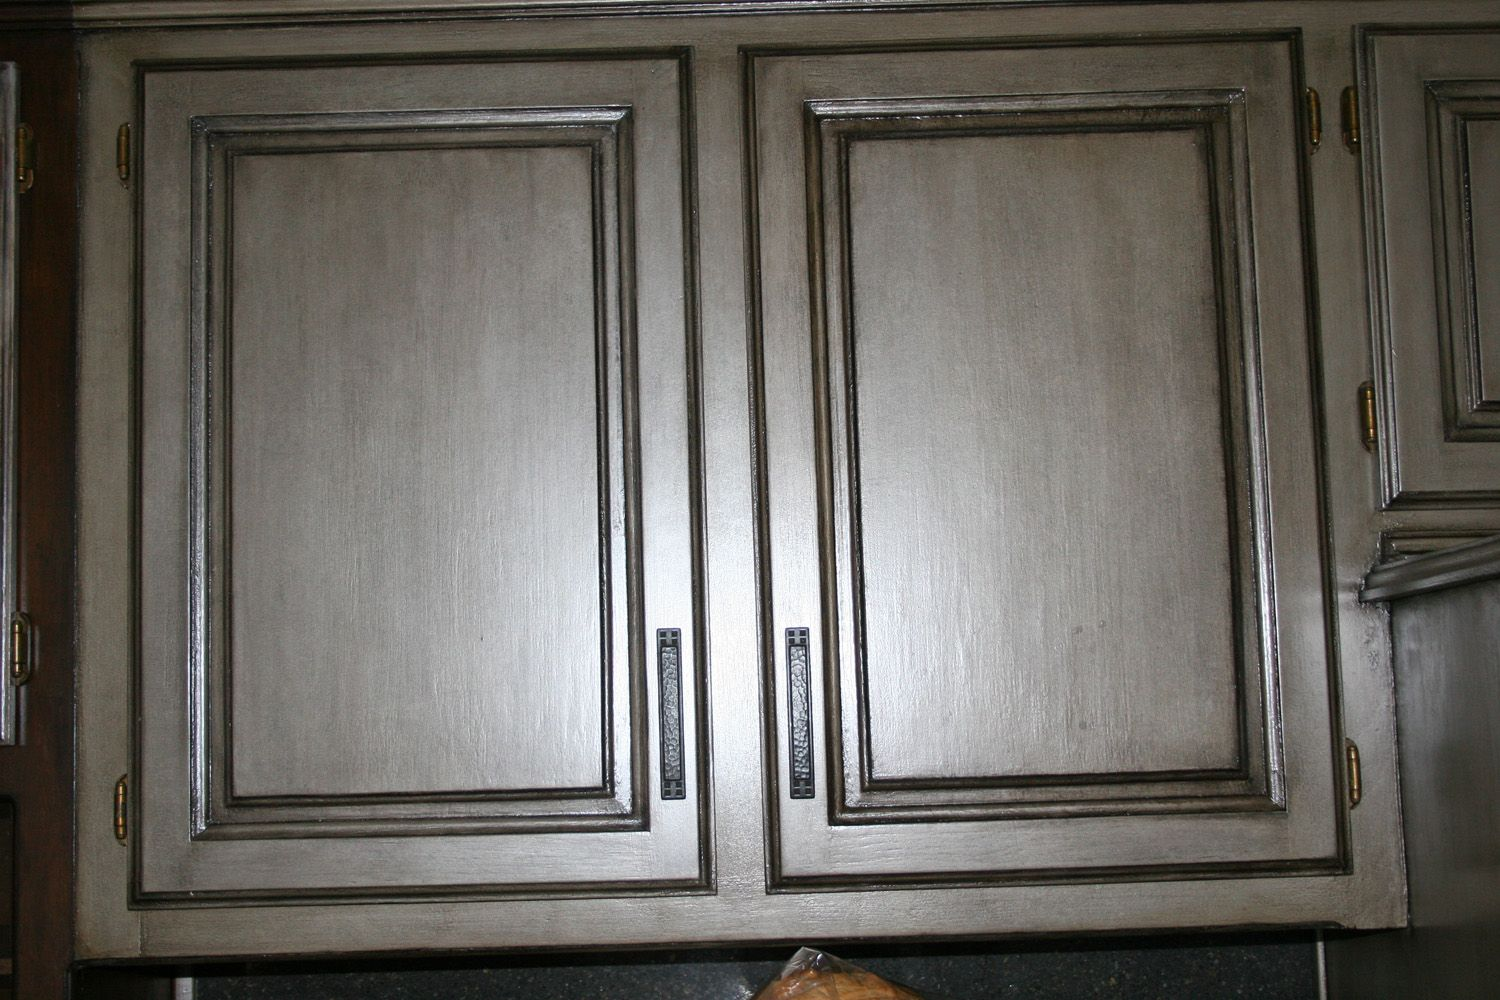 GRAY GLAZED Painted Kitchen Cabinets This Finish Is Overglazed - Grey glazed kitchen cabinets